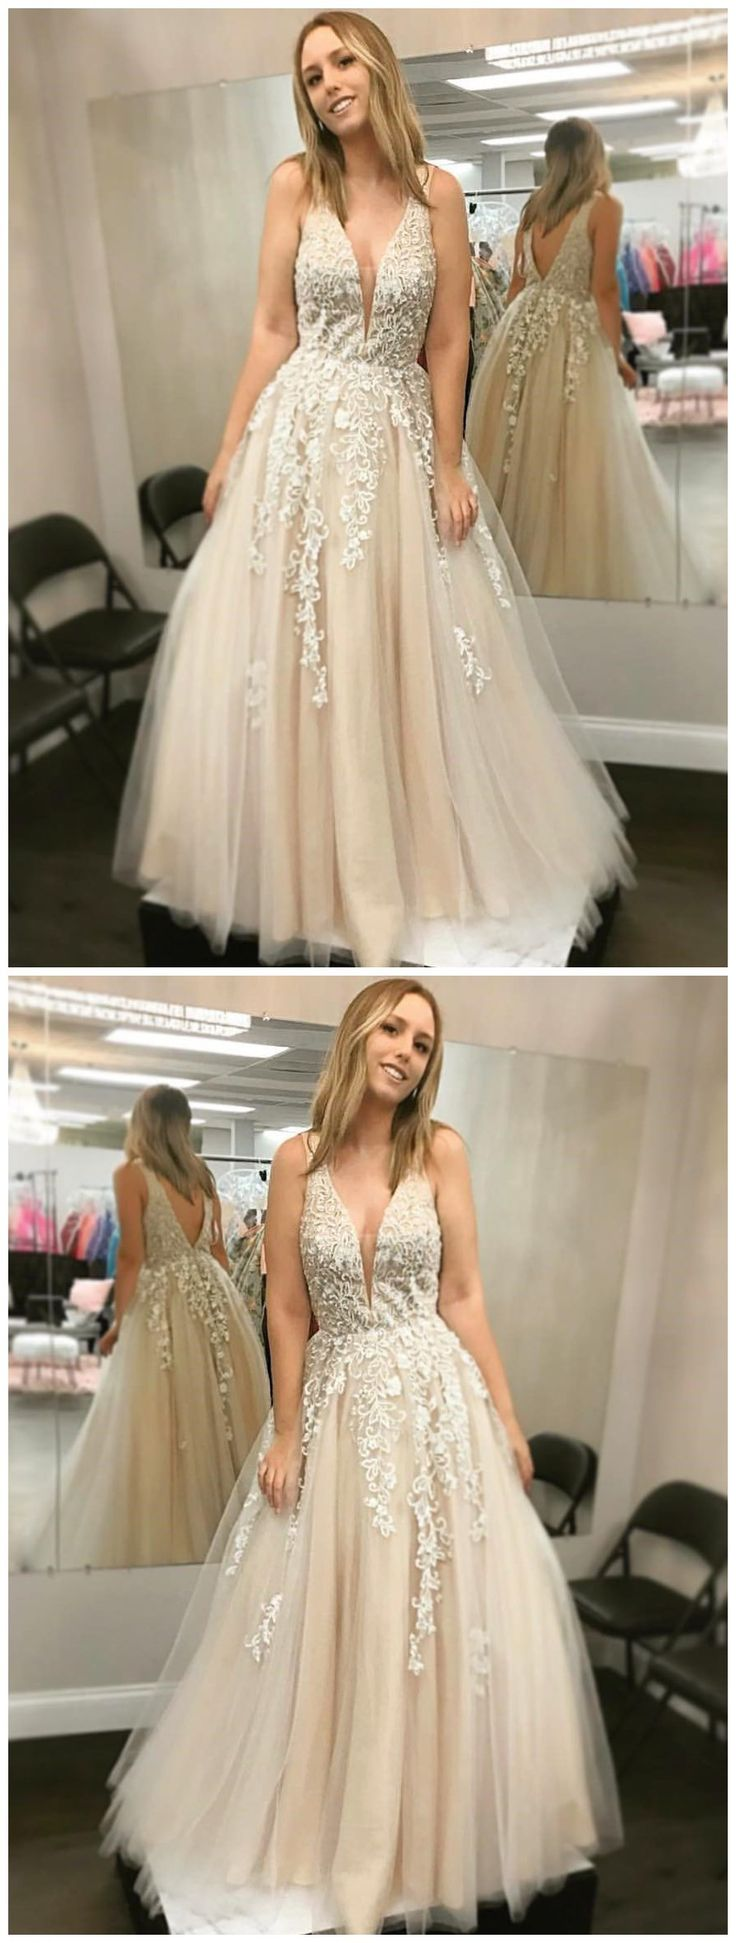 prom dresses 2018,gorgeous prom dresses,prom dresses unique,prom dresses elegant,prom dresses straps,prom dresses vintage,prom dresses fashion,prom dresses modest,prom dresses simple,prom dresses long,prom dresses for teens,prom dresses boho,prom dresses cheap,junior prom dresses,beautiful prom dresses,prom dresses aline,prom dresses champagne,prom dresses appliqués #amyprom #prom #promdress #evening #eveningdress #dance #longdress #longpromdress #fashion #style #dress #clothing #party